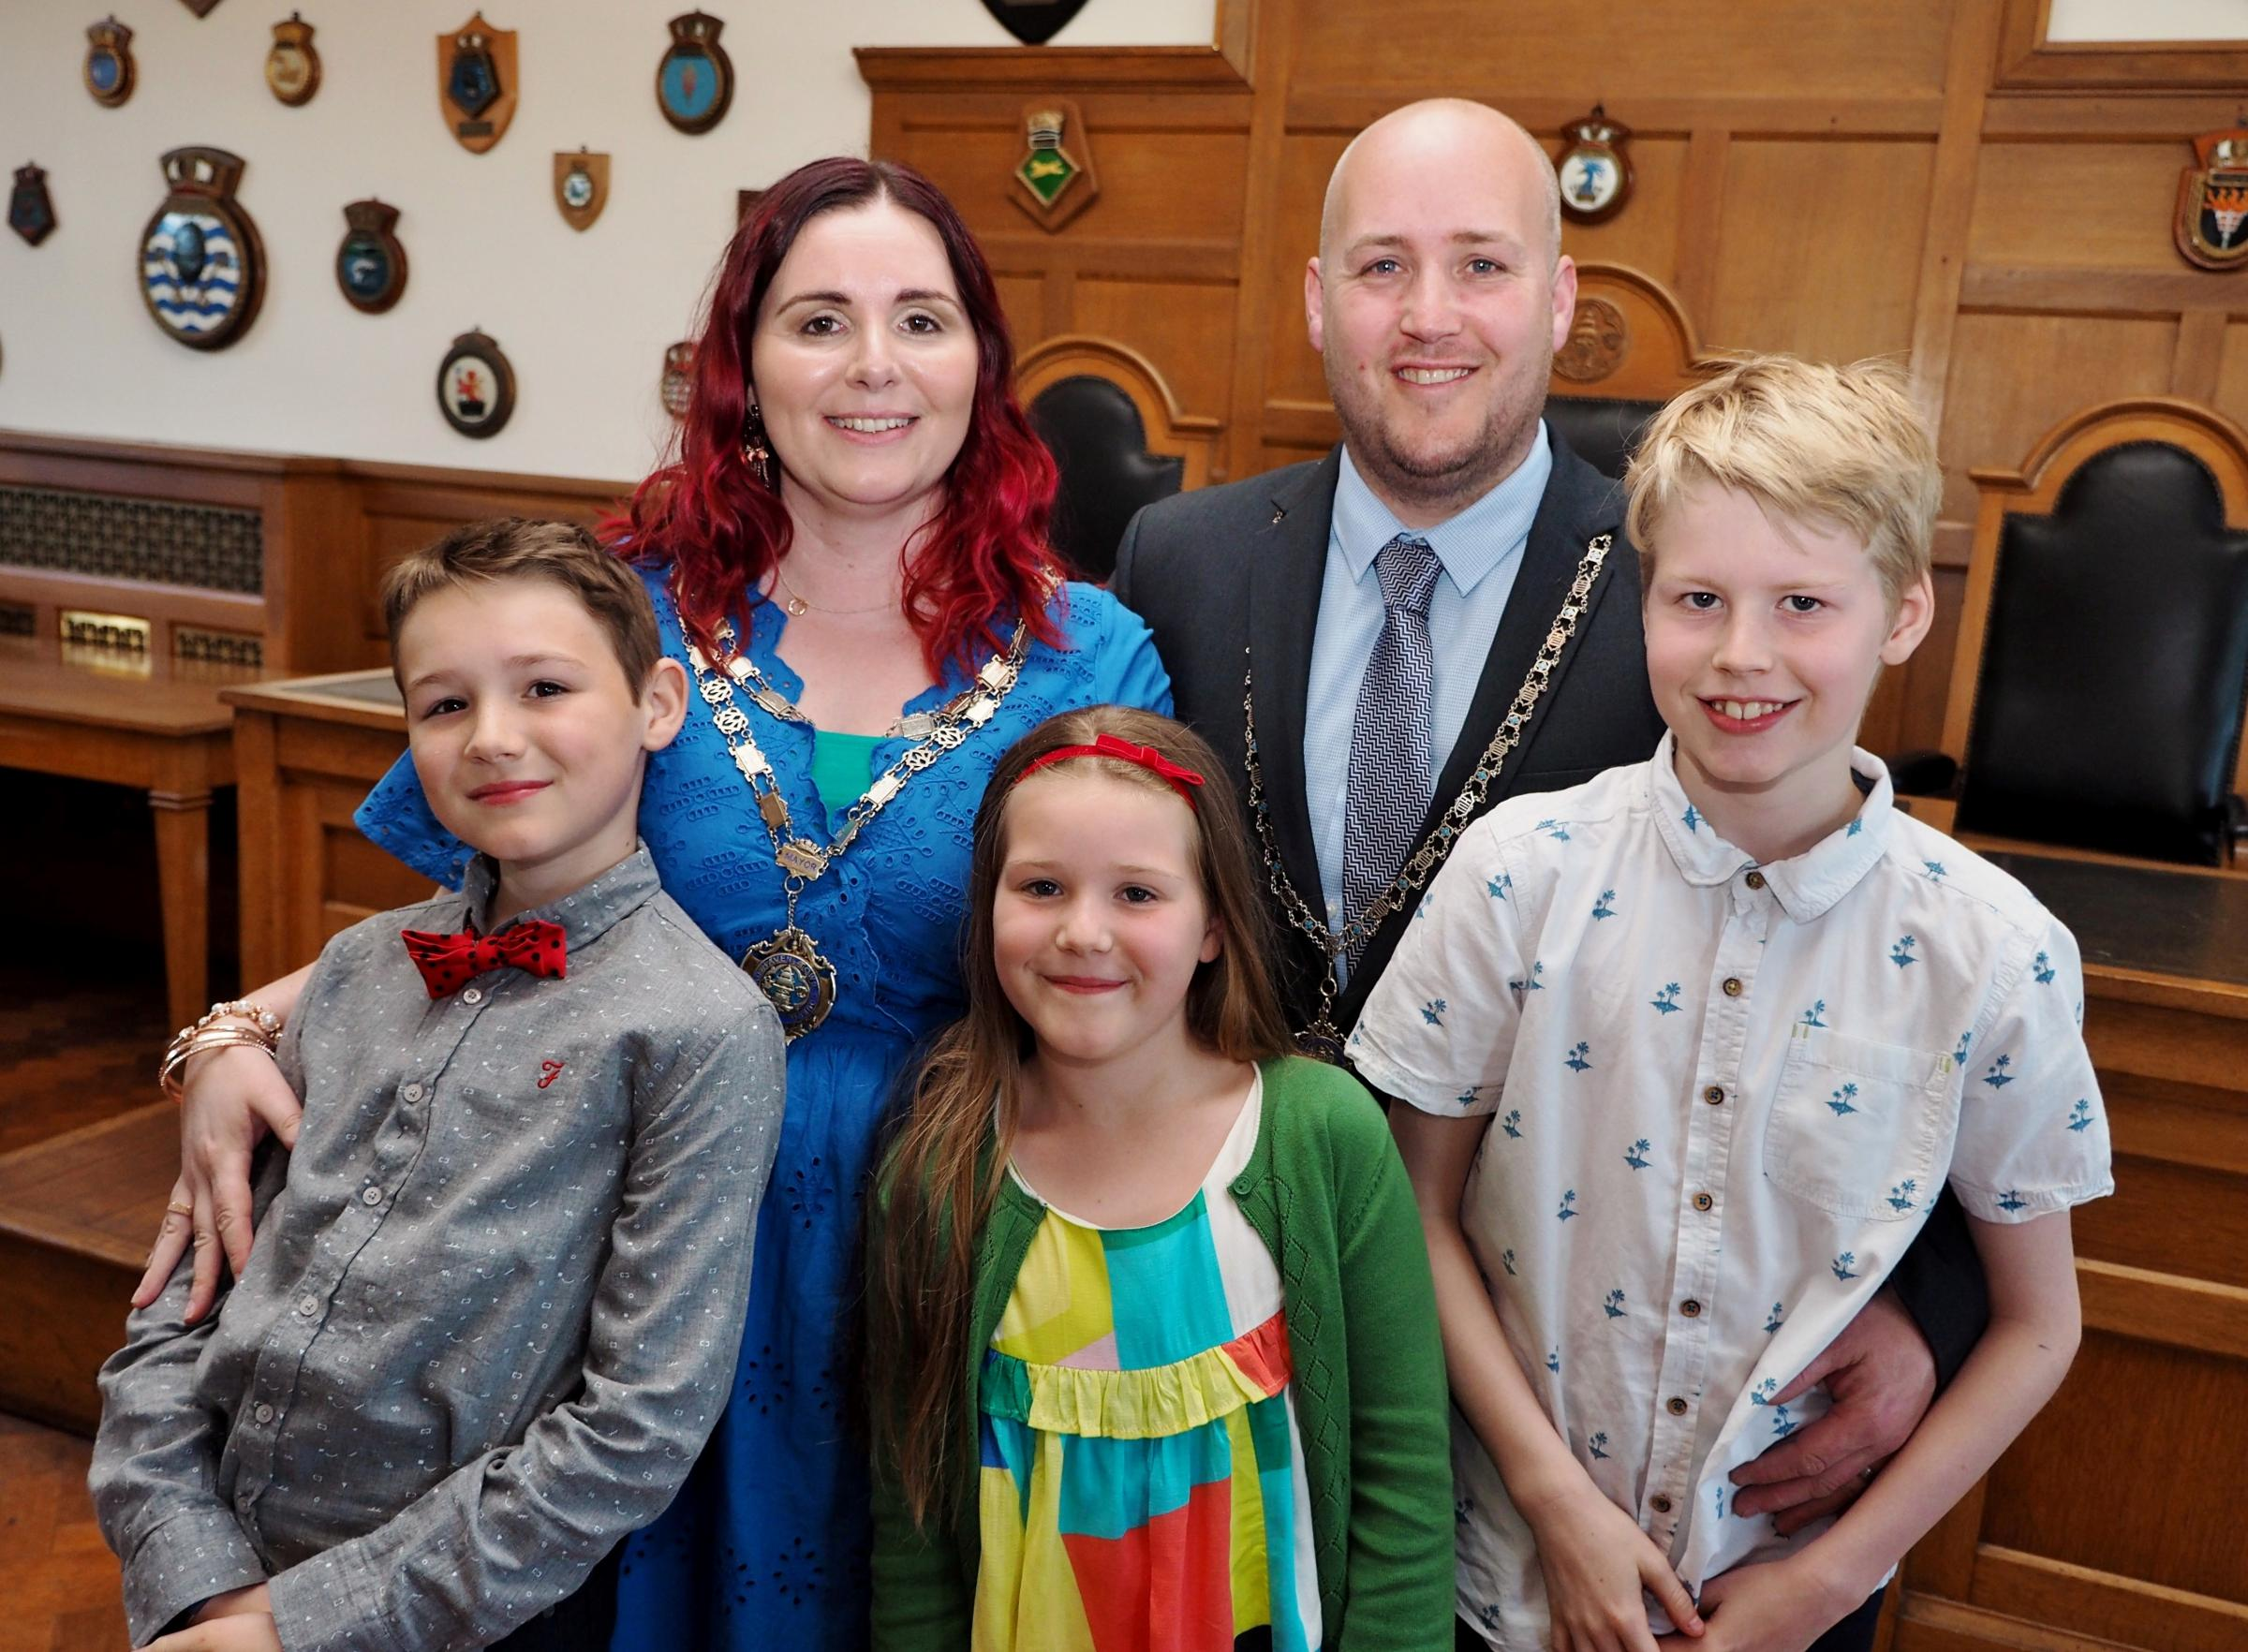 Milford Haven's new mayor, Cllr Rose Gray, with her family. PICTURE: Milford Mercury